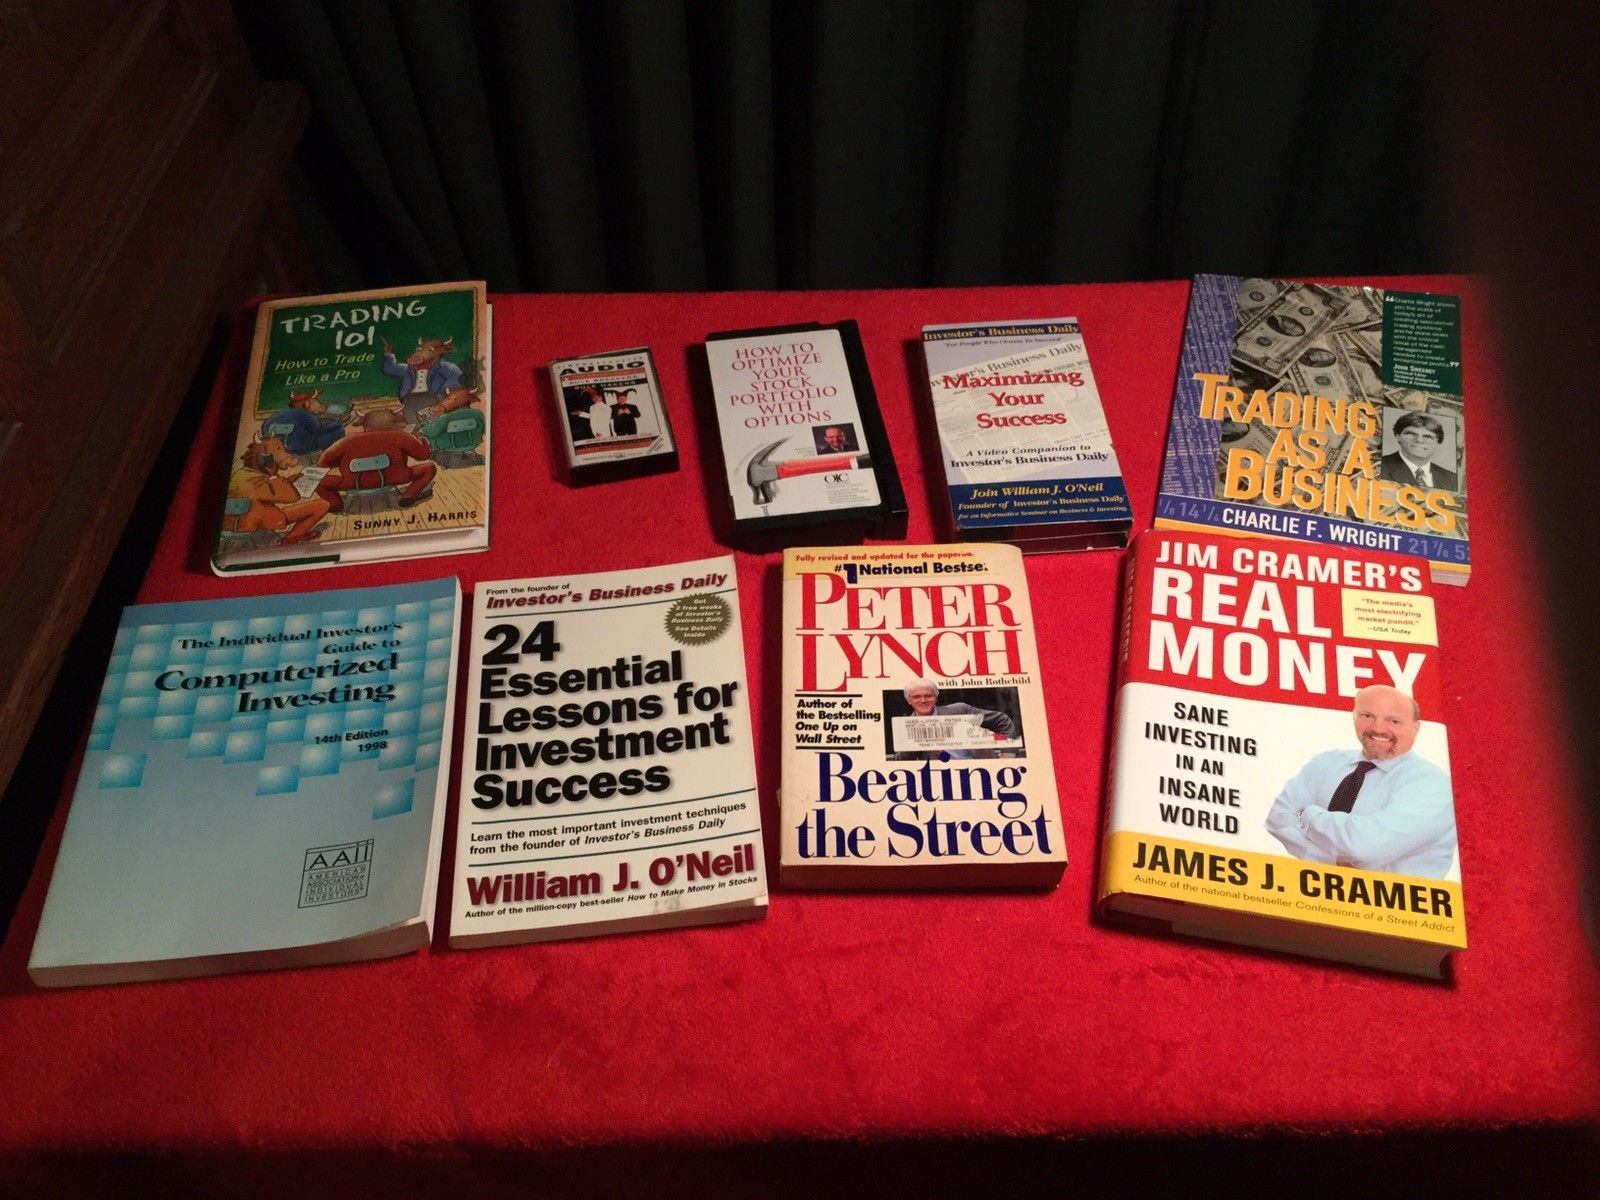 Stocks, Trading and investment books,VHS tapes, cassette. Cramer, Lynch, O'Neil